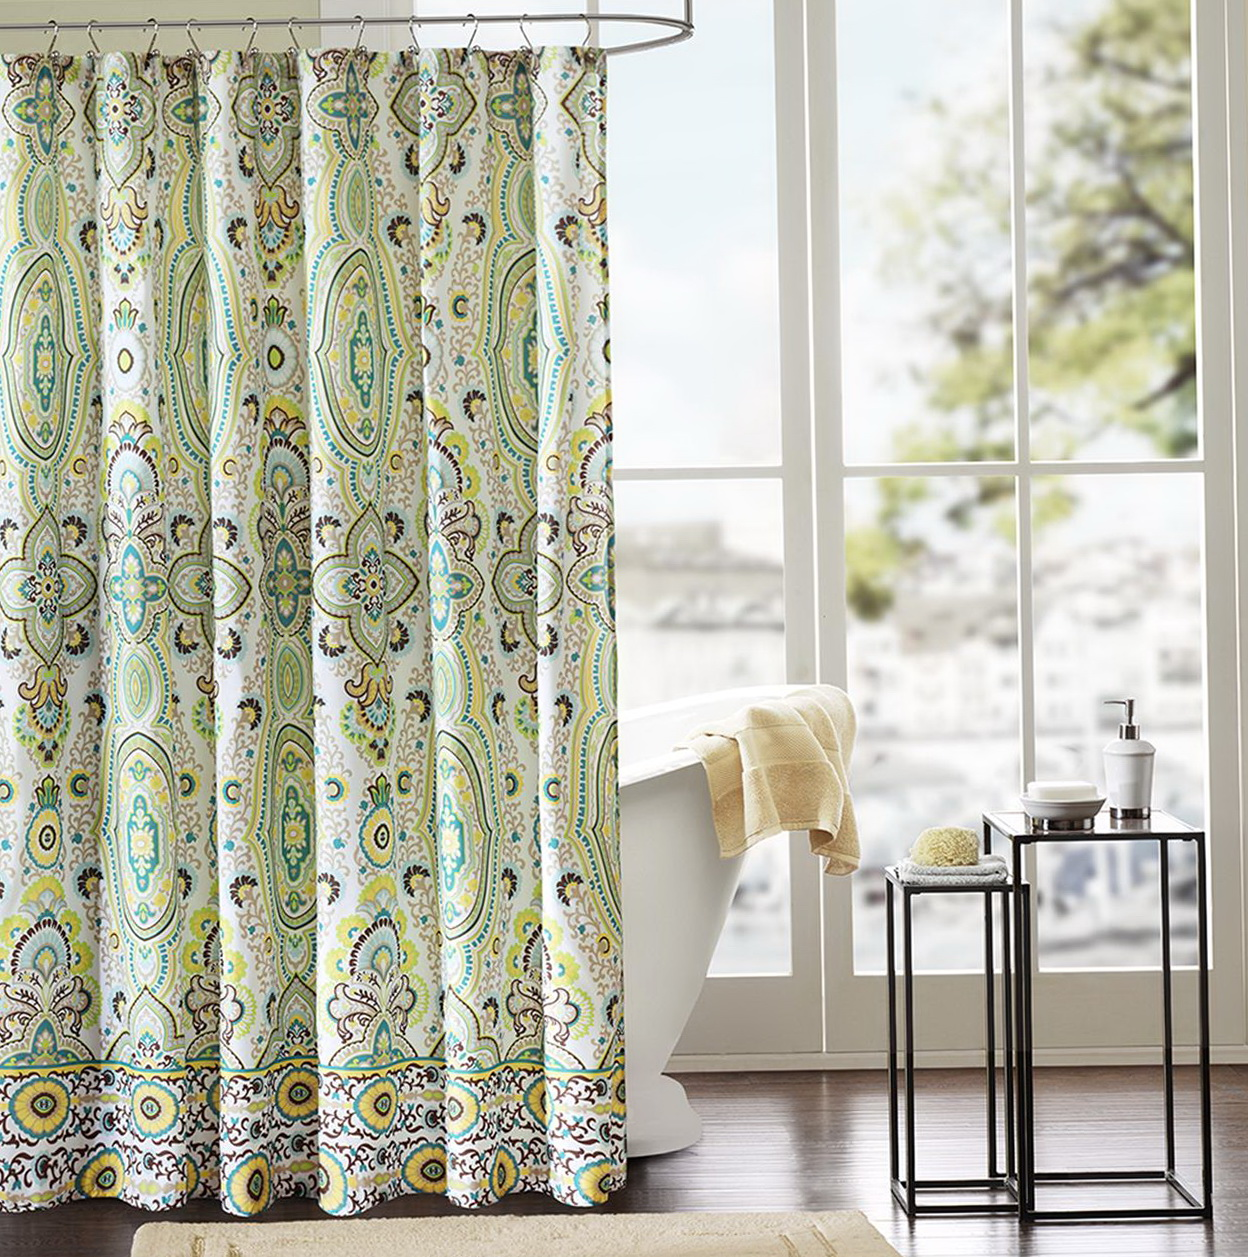 Unique fabric shower curtains home design ideas for Weird shower curtains